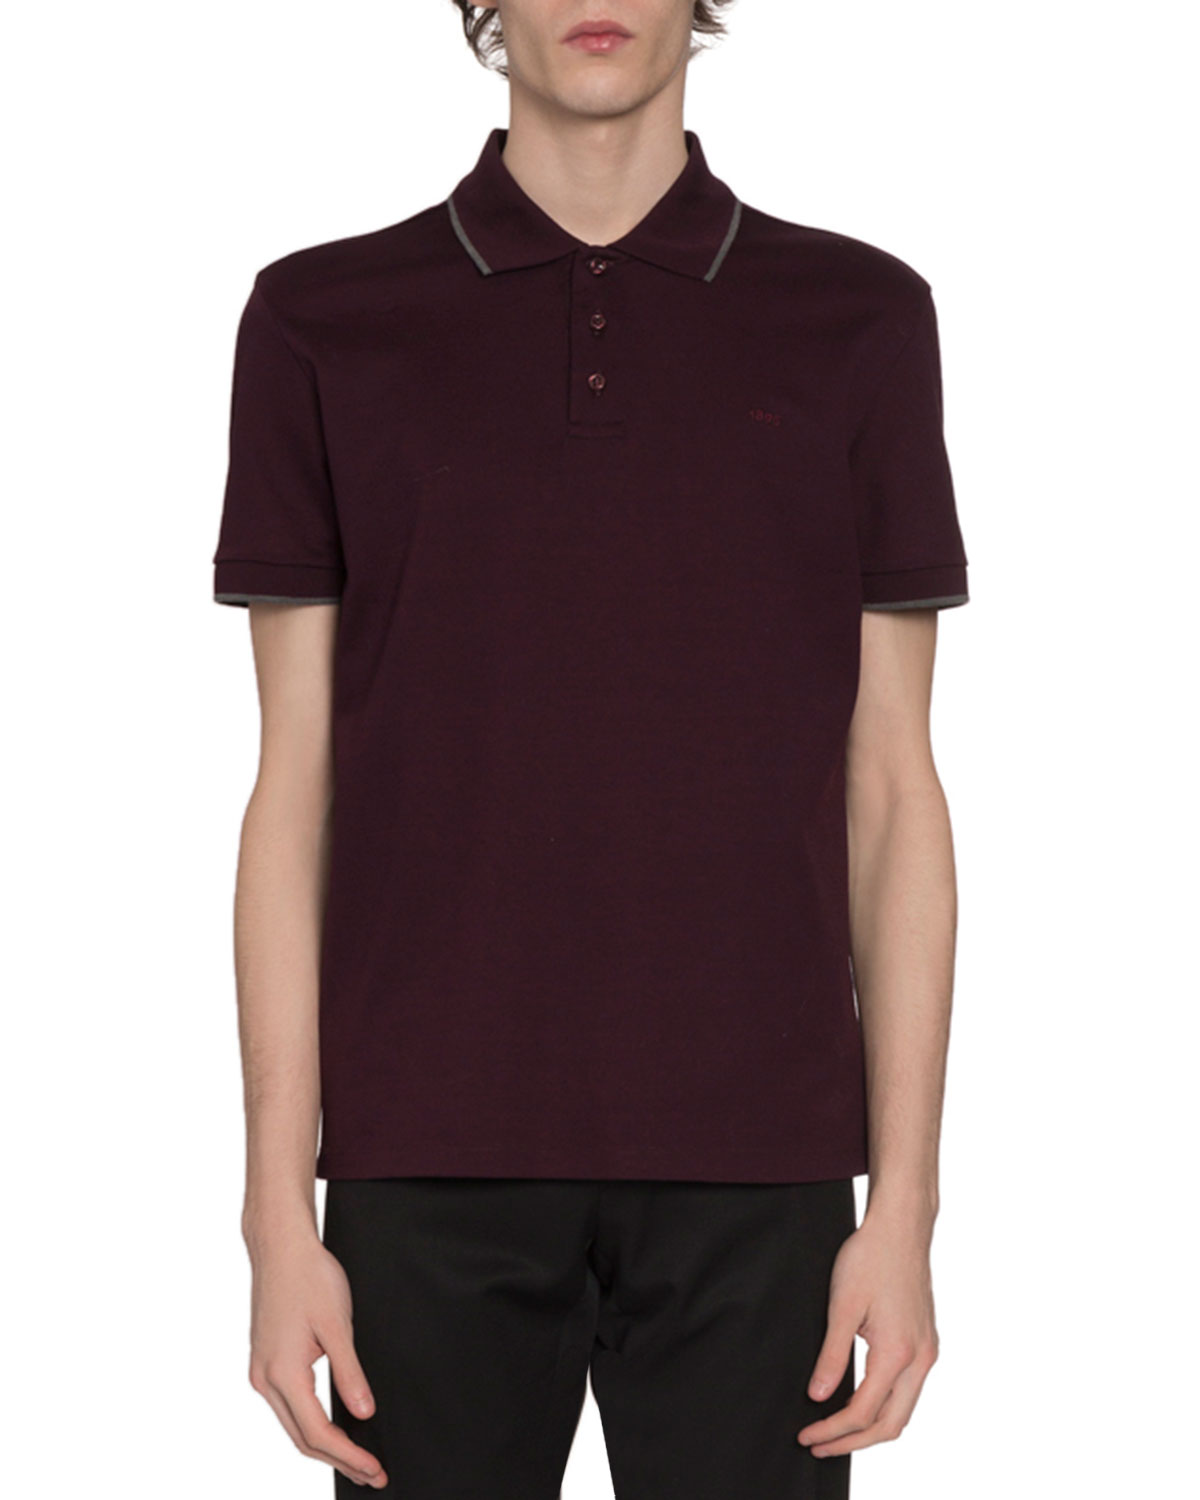 Berluti Knits MEN'S TIPPED BASIC PIQUE-KNIT POLO SHIRT, PURPLE